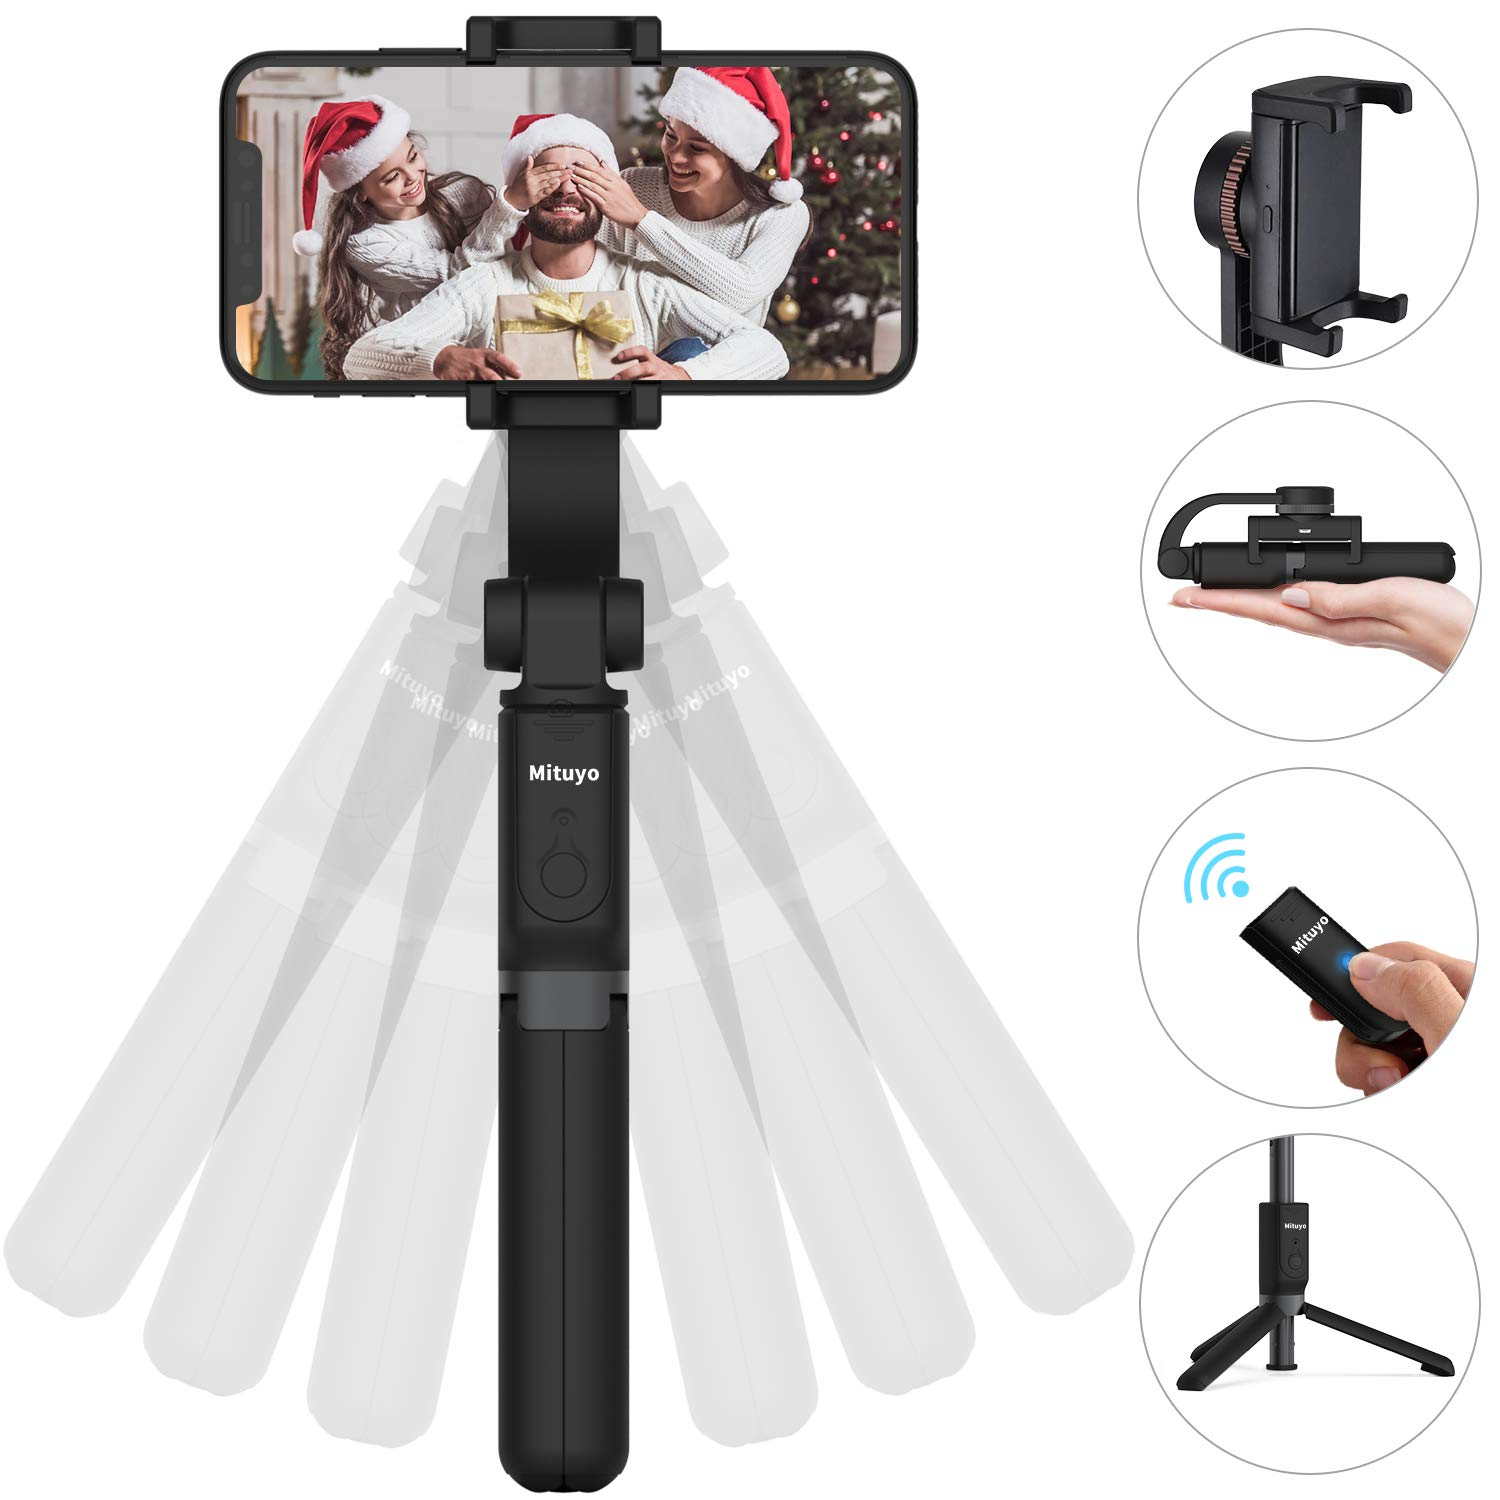 Bluetooth PRO Selfie Stick Tripod Stabilizer with Extension and Wireless Remote Shutter Compatible with iPhone, Samsung, Huawei, Other Smartphones by Mituyu